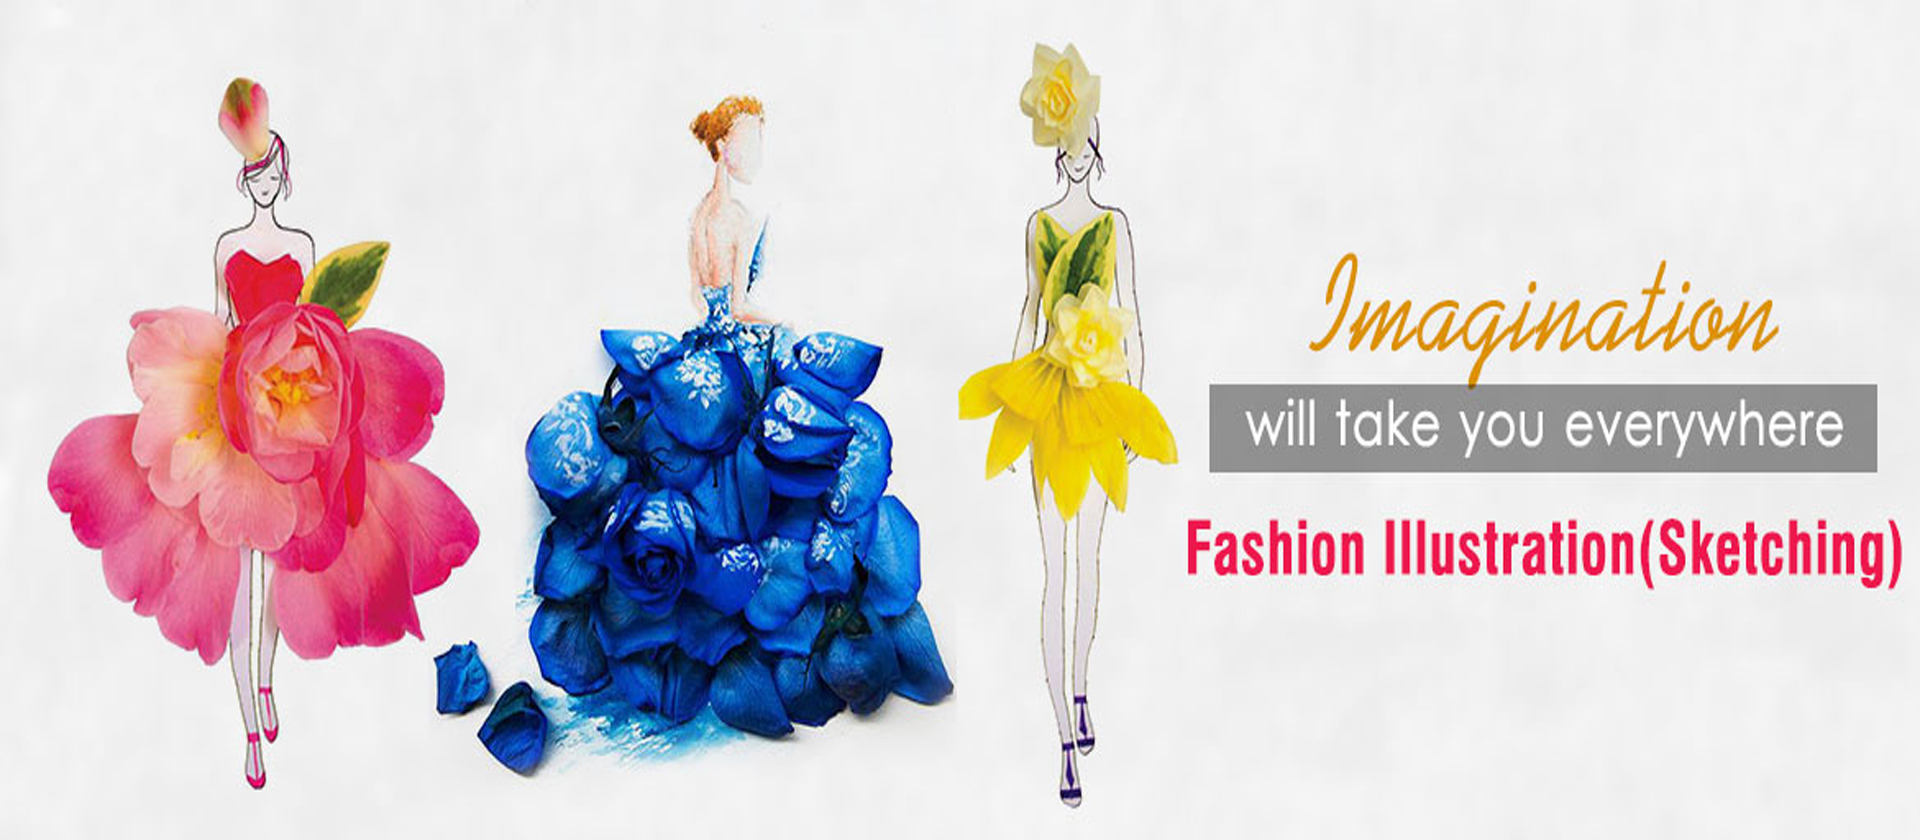 Internation Institute Of Fashion Academy Is Government Approved College For Fashion Designing And Interior Designing Courses Like Diploma Course Advance Diploma Course And B Sc Course It Is A Top College In Delhi Ncr